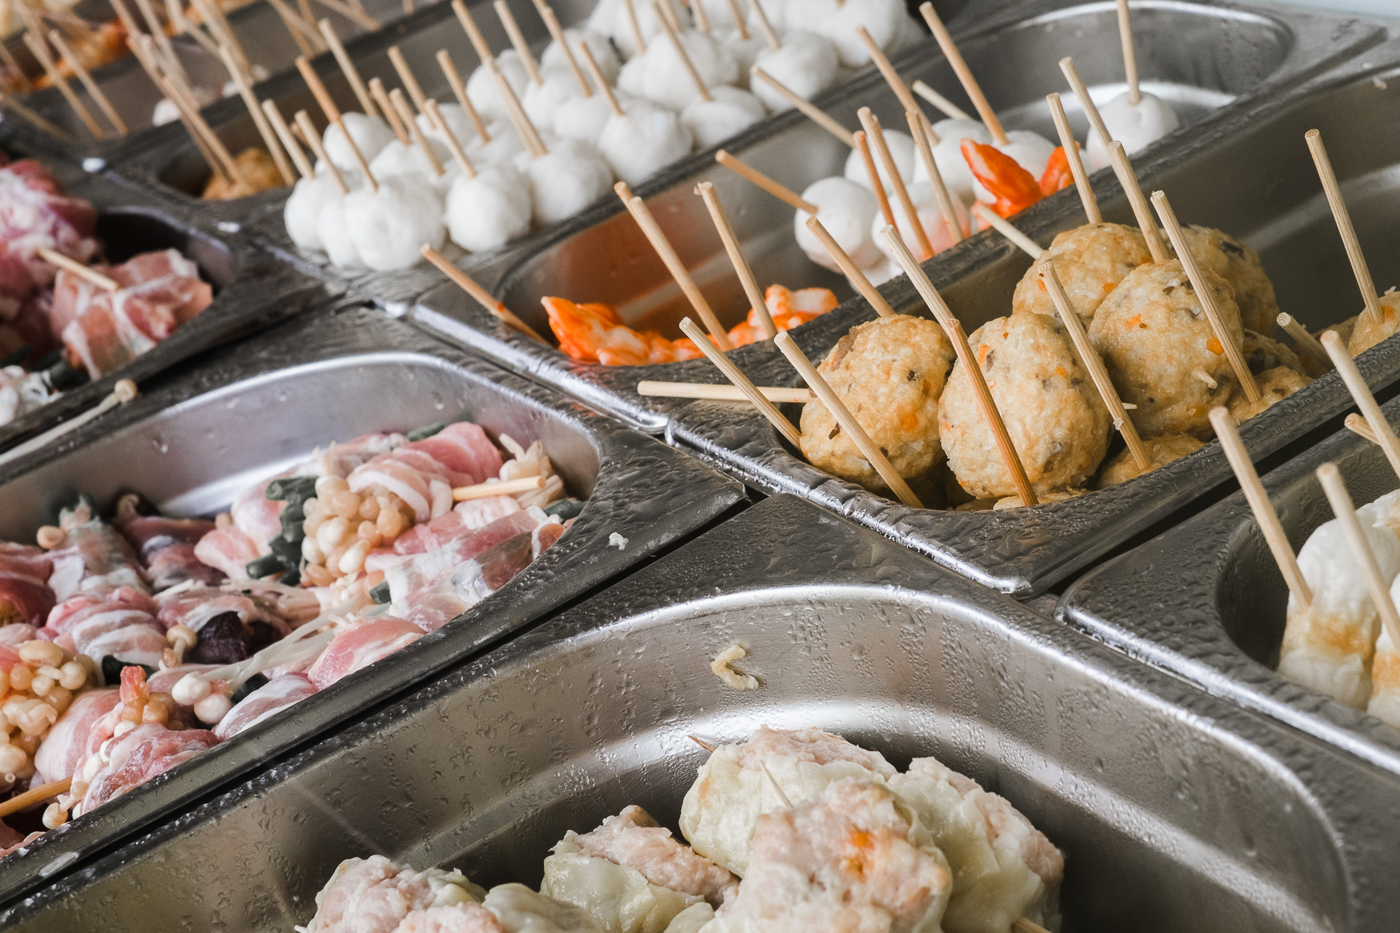 Customers of HK Eat Fresh can choose from a variety of street food which is fried to order.